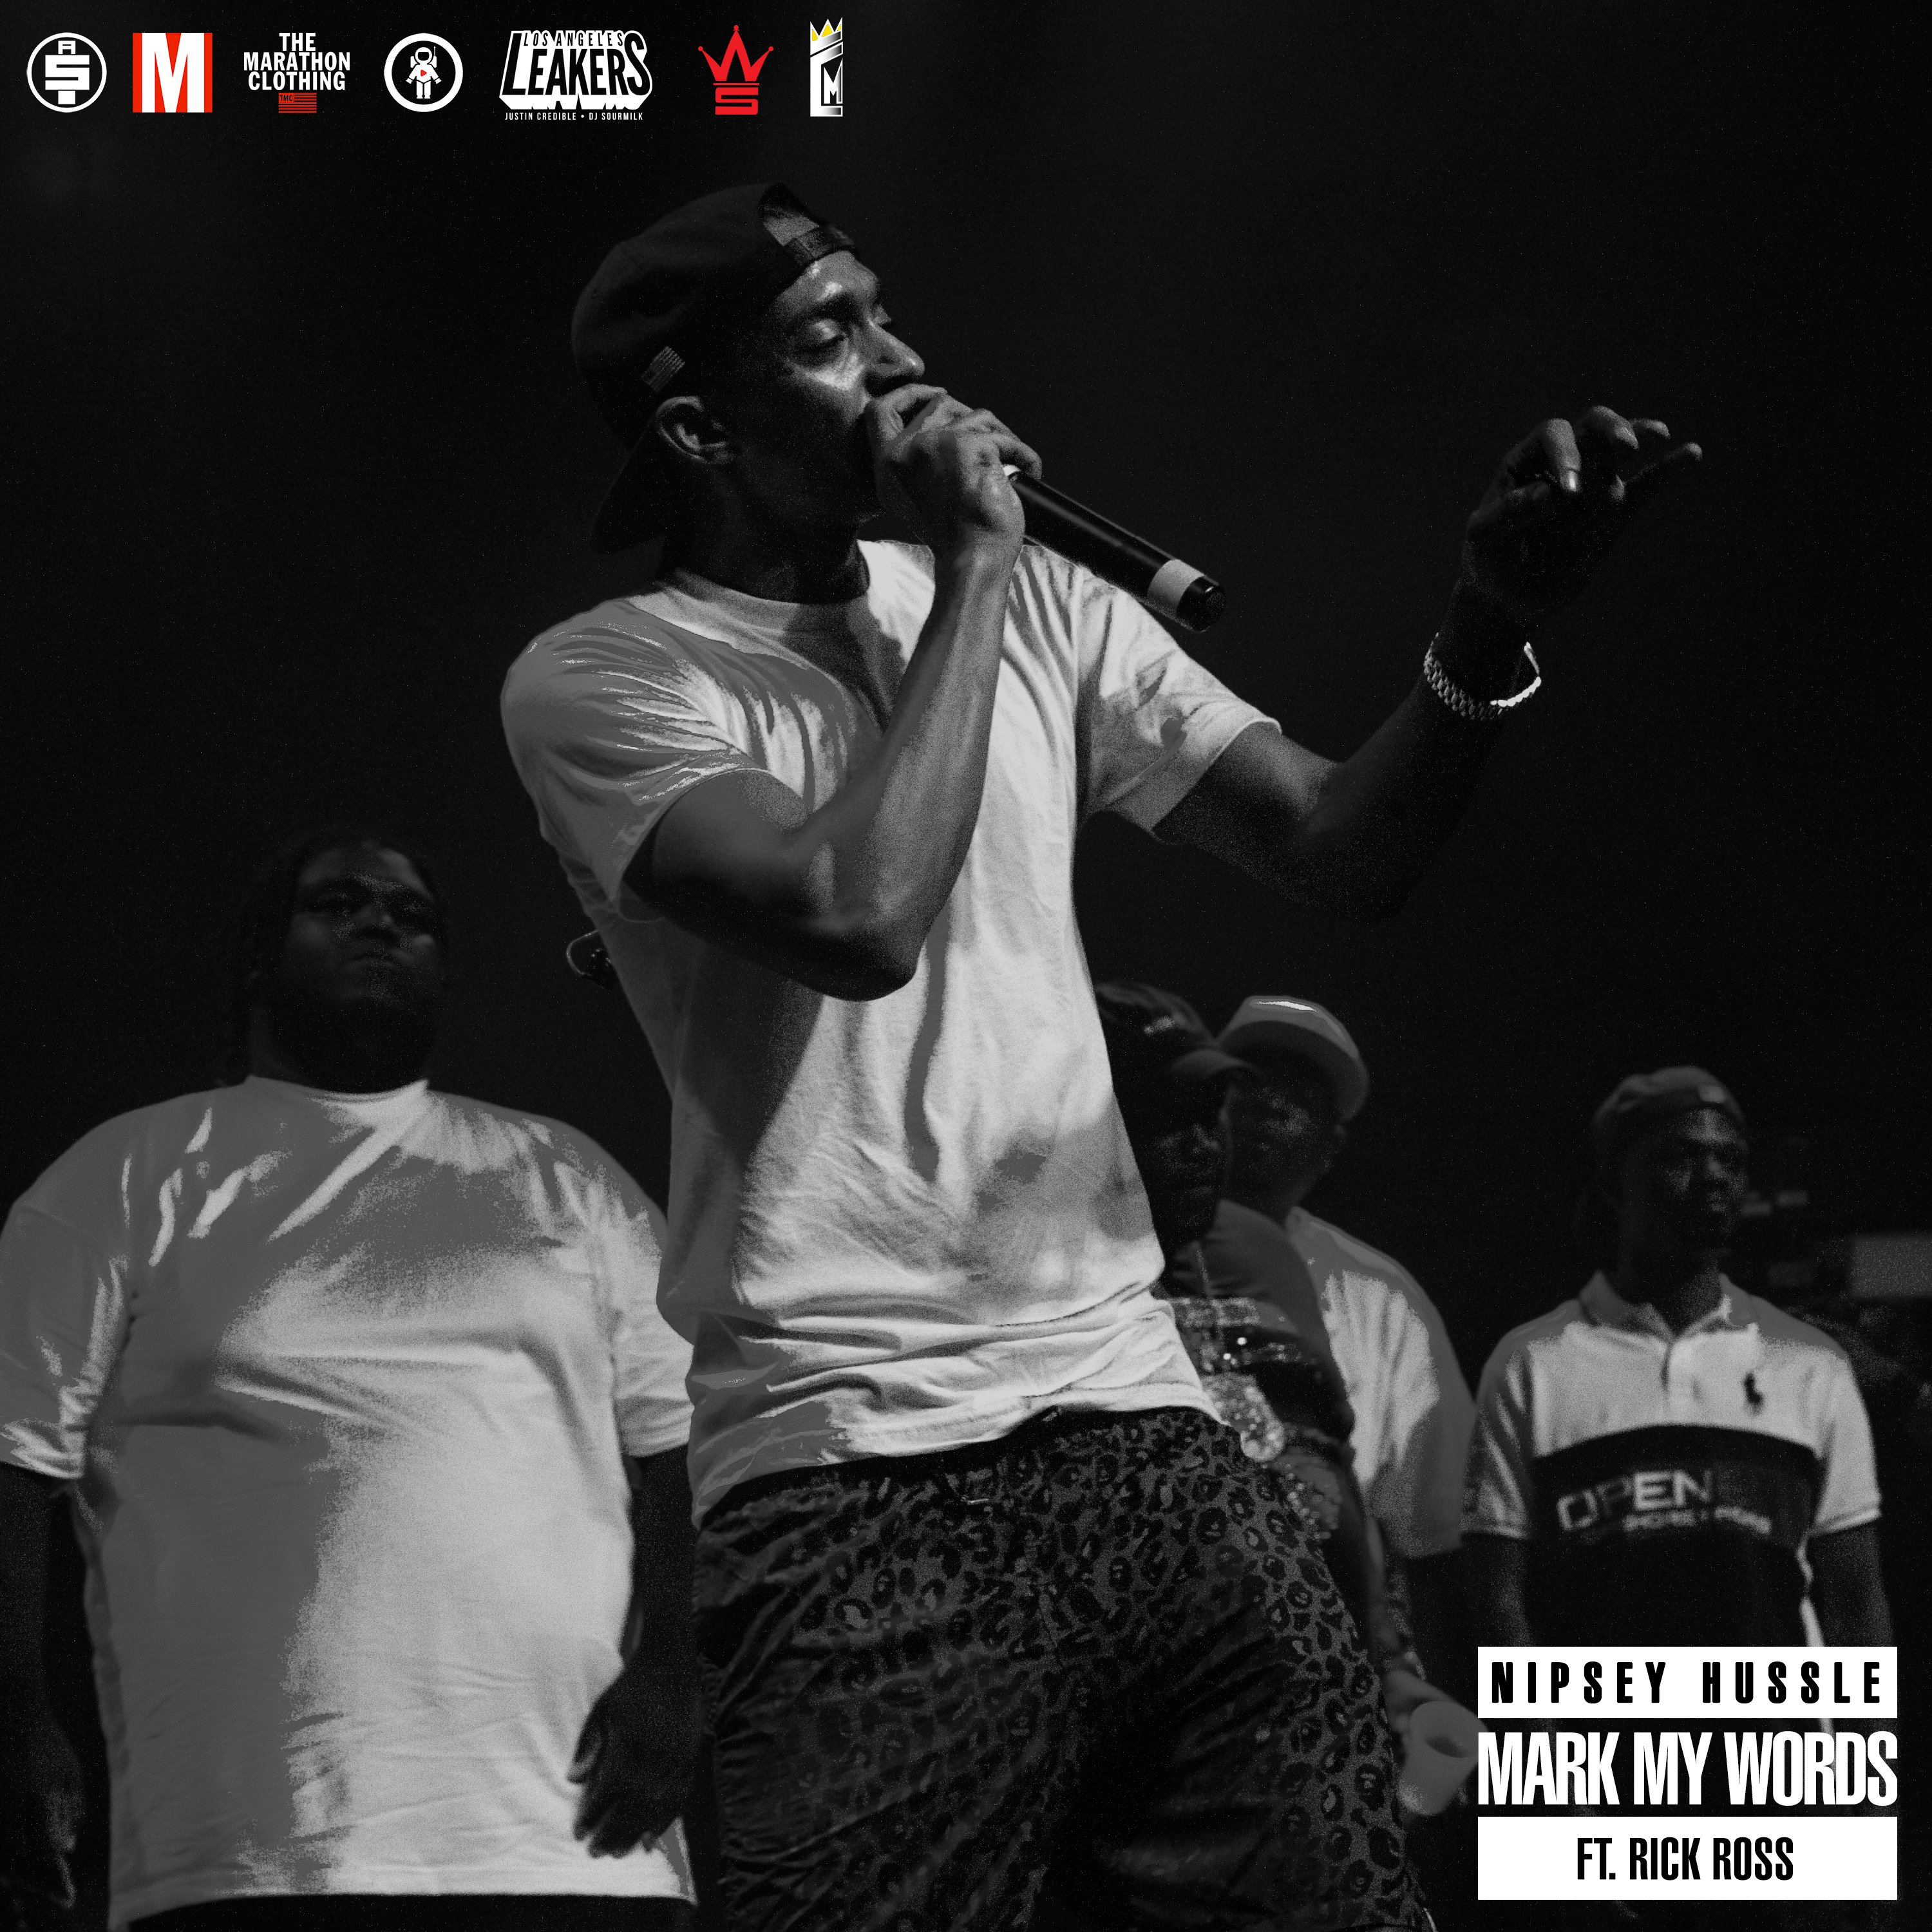 nipsey-hussle-mark-my-words